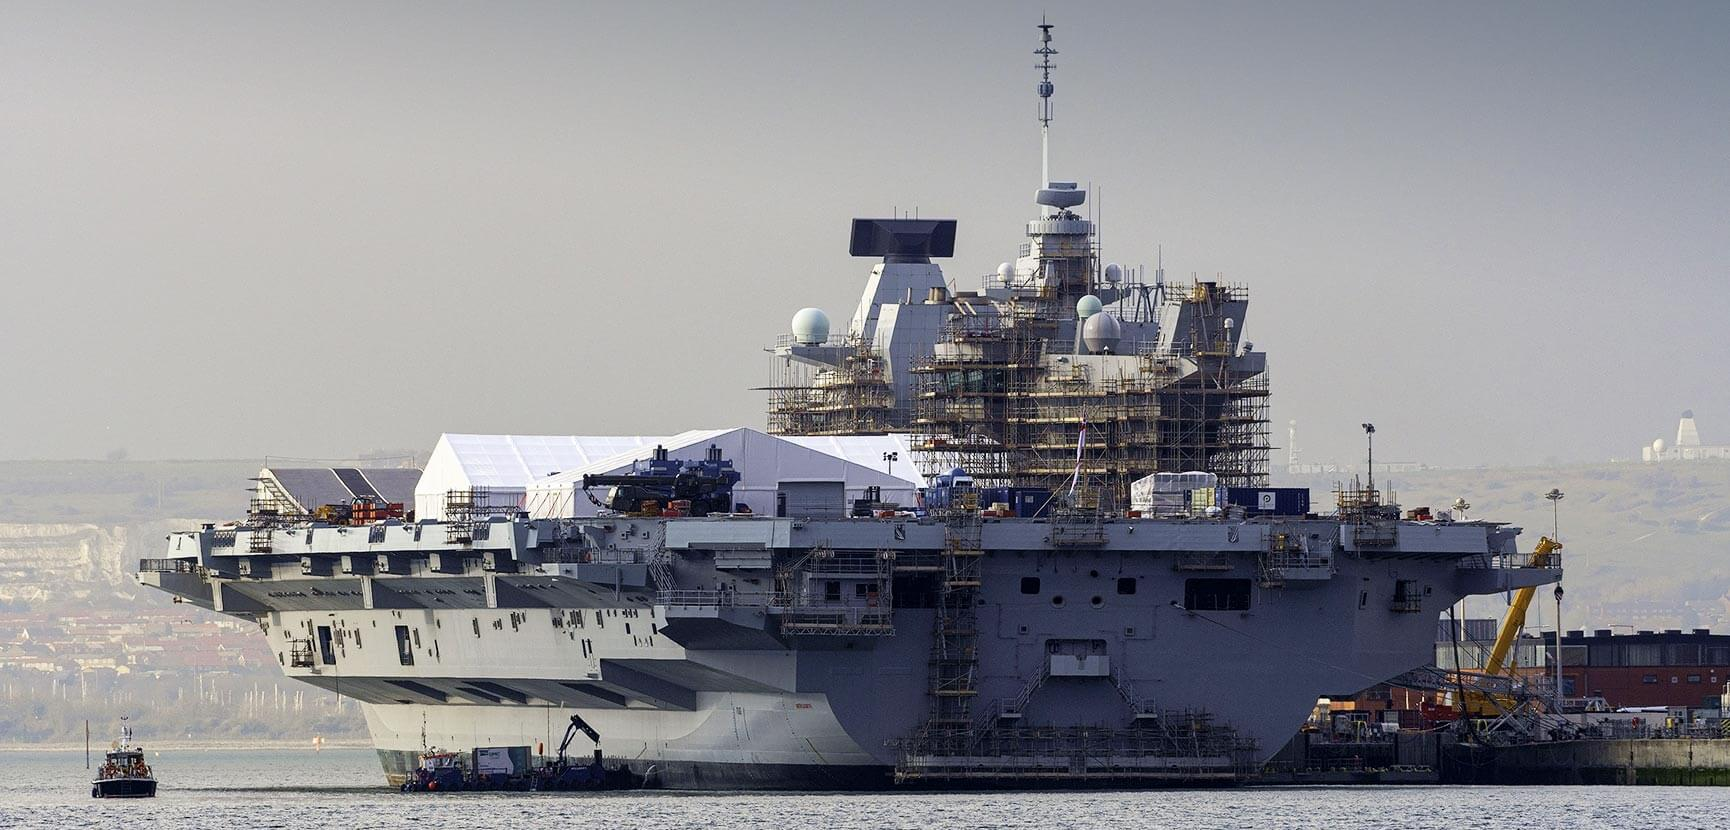 HMS Queen Elizabeth Portsmouth Capability Insertion Period